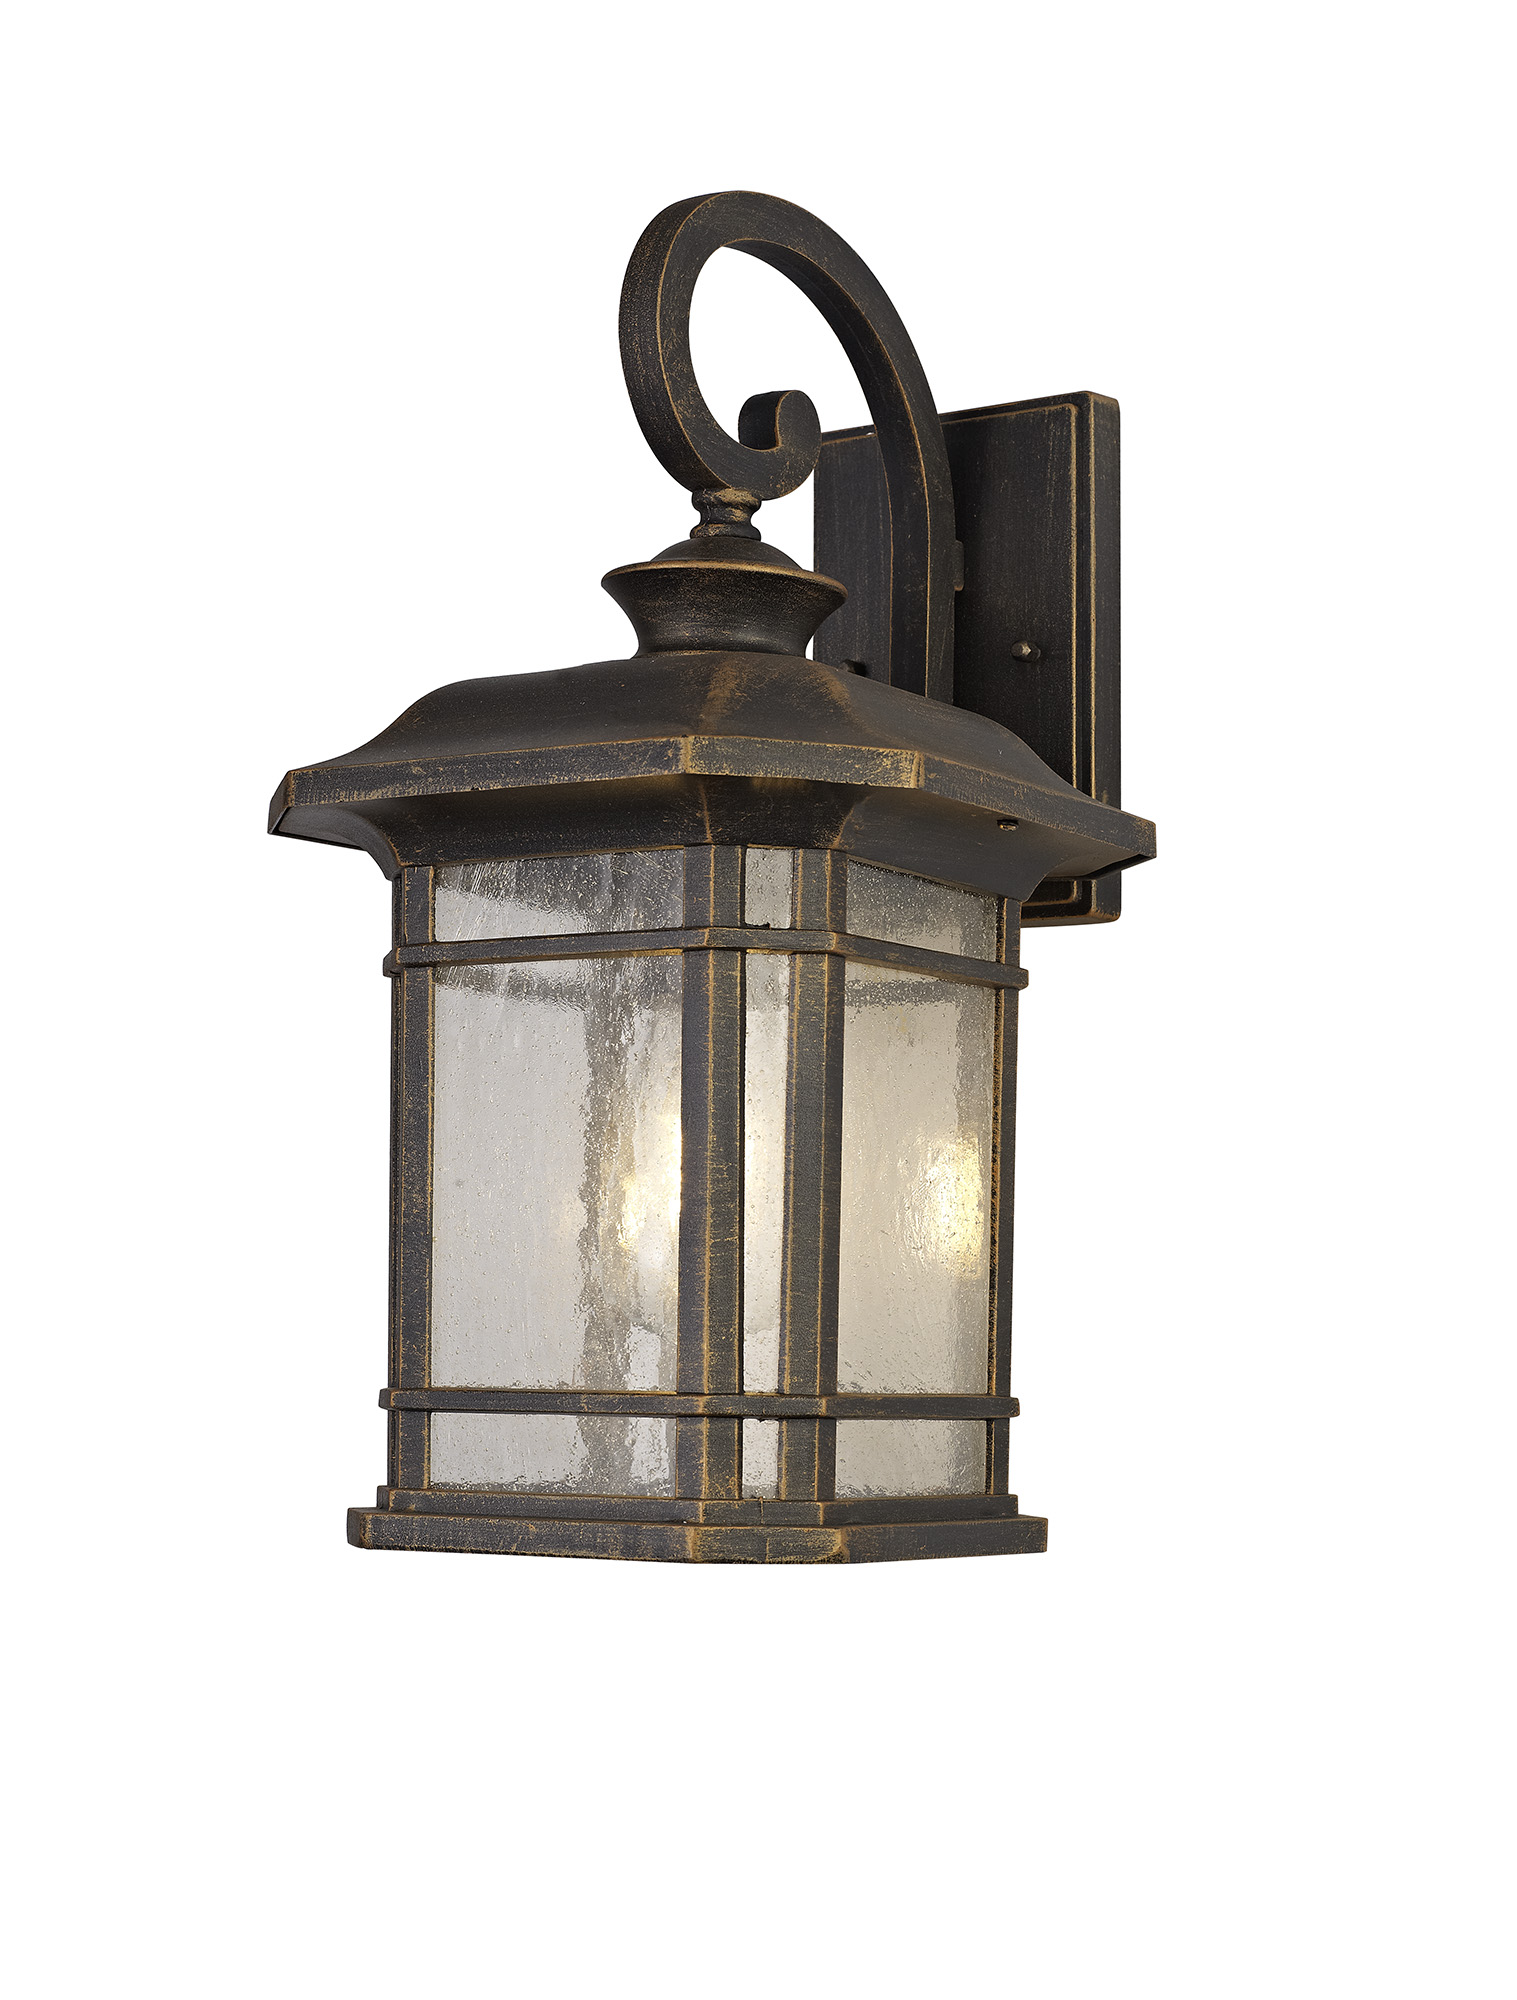 Large Wall Lamp, 1 x E27, Brushed Black Gold/Seeded Glass, IP54, 2yrs Warranty